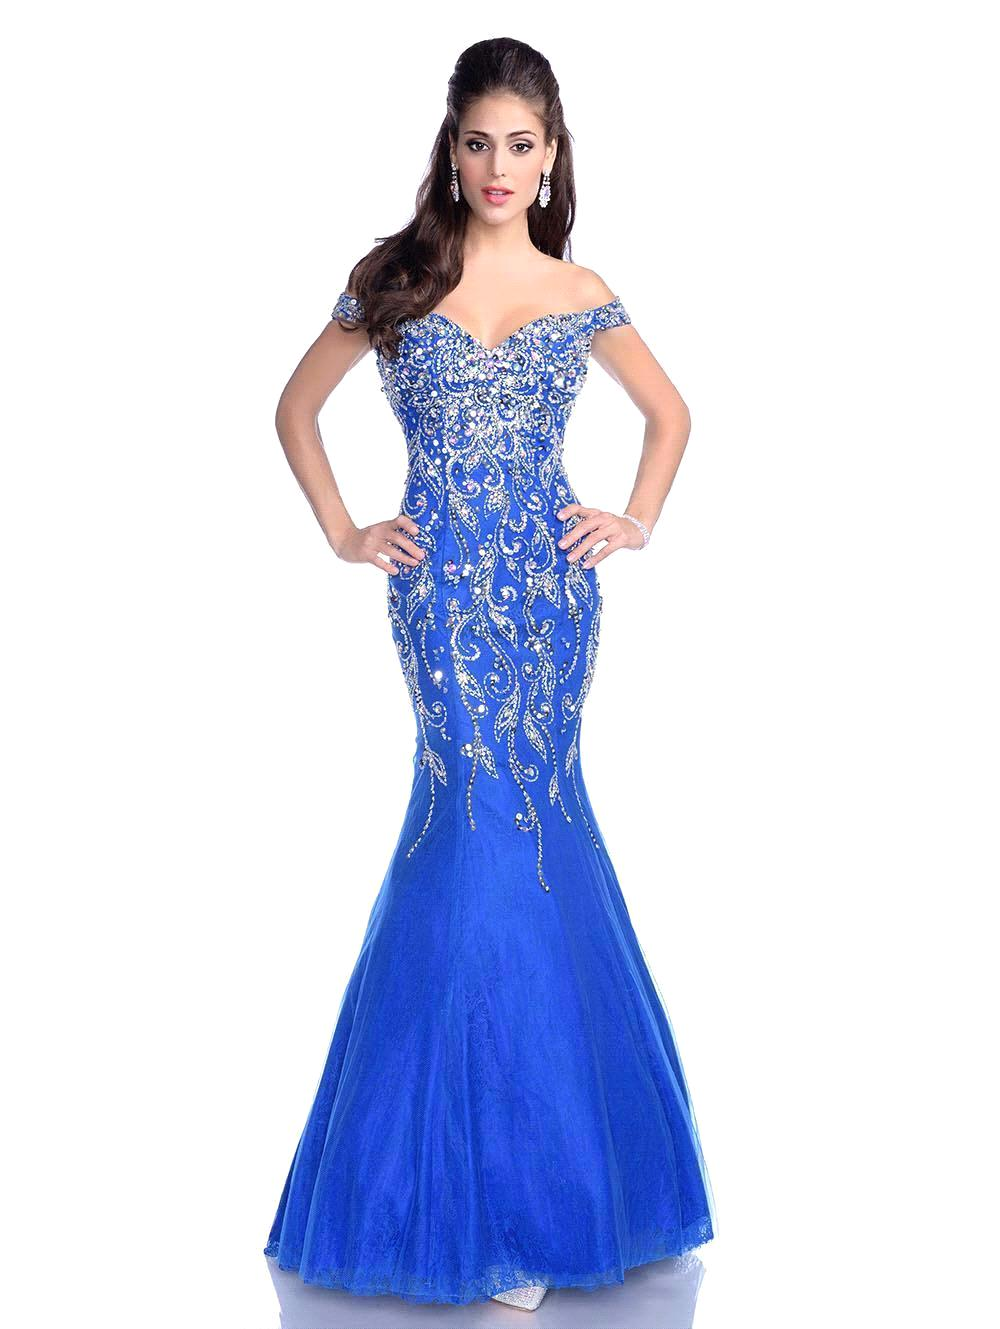 Robe De Soiree New Arrival 2018 Luxurious Crystal Beaded Royal Blue Mermaid Formal Prom Evening Gown Mother Of The Bride Dresses